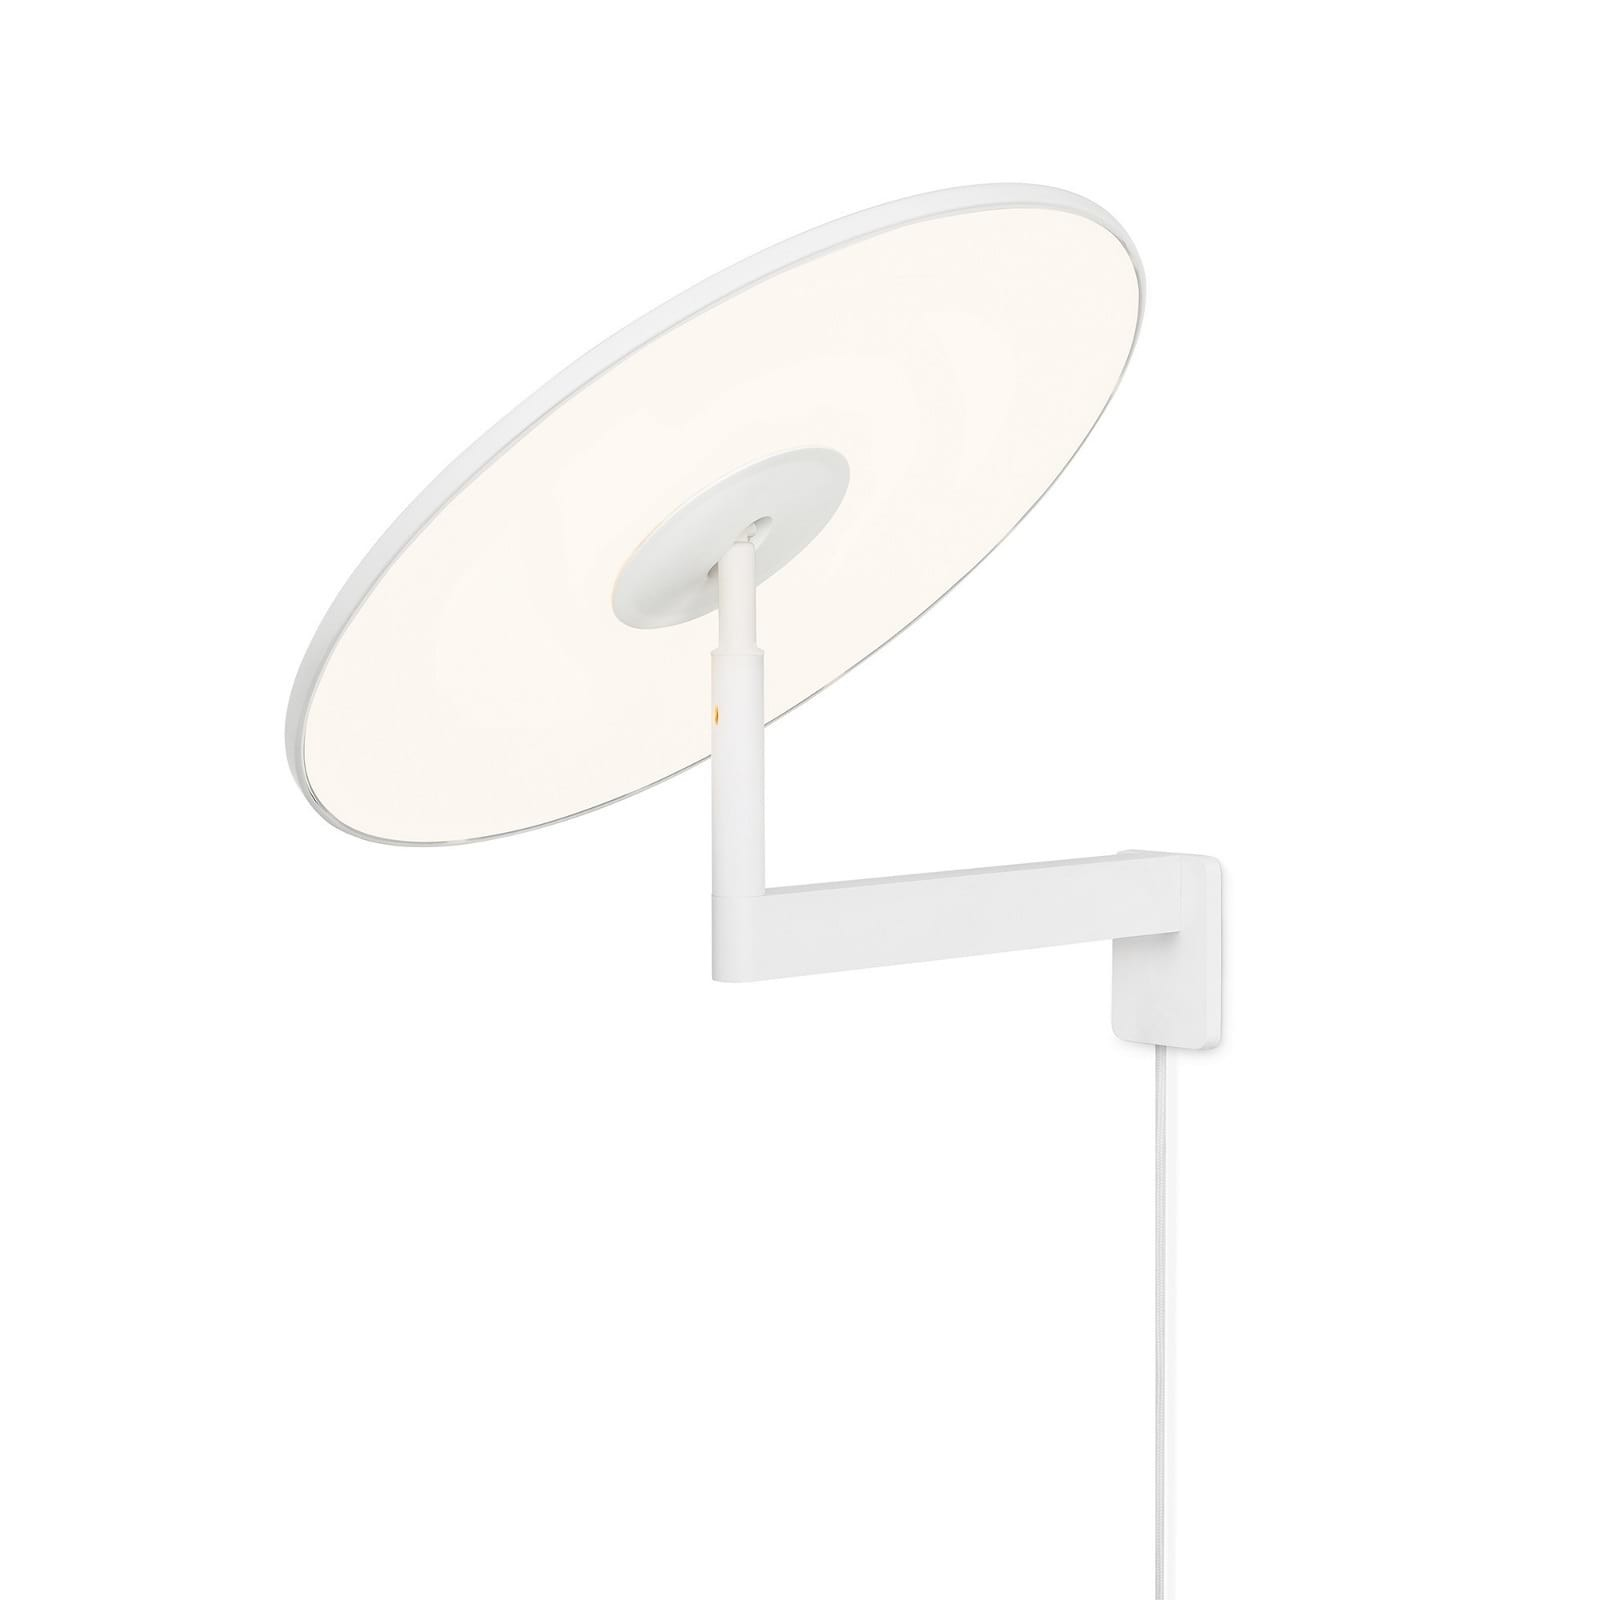 Circa 16 LED Wall Lamp (White) - Pablo Designs